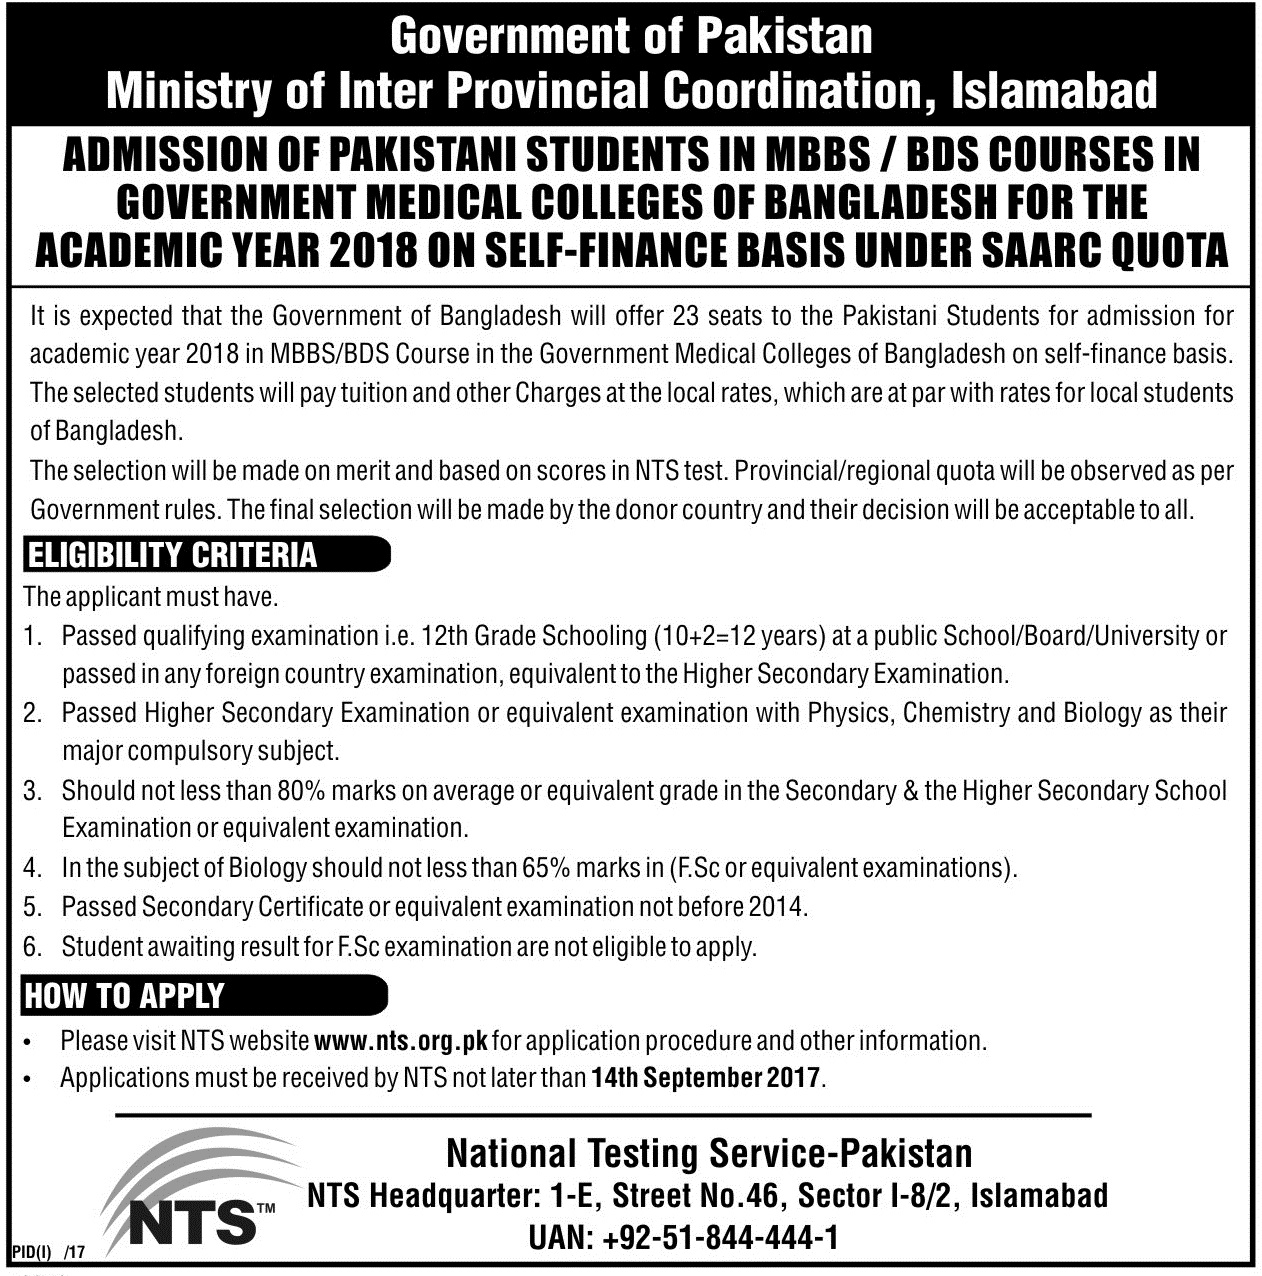 MBBS, BDS Admissions in Bangladesh for Pakistani StudentsMBBS, BDS Admissions in Bangladesh for Pakistani Students 2018 2018